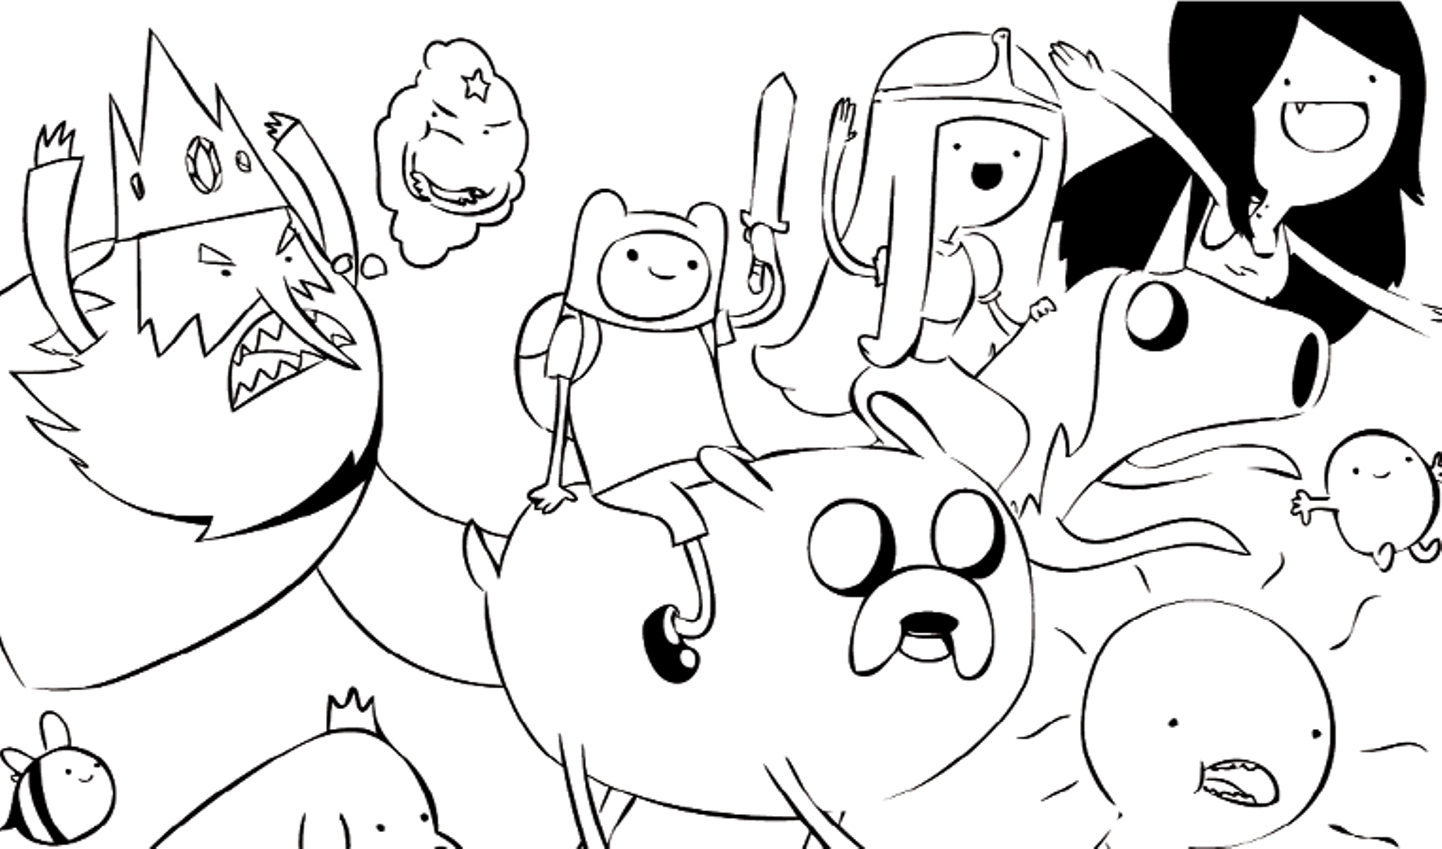 adventure time coloring pages printable - Printable Color Pages